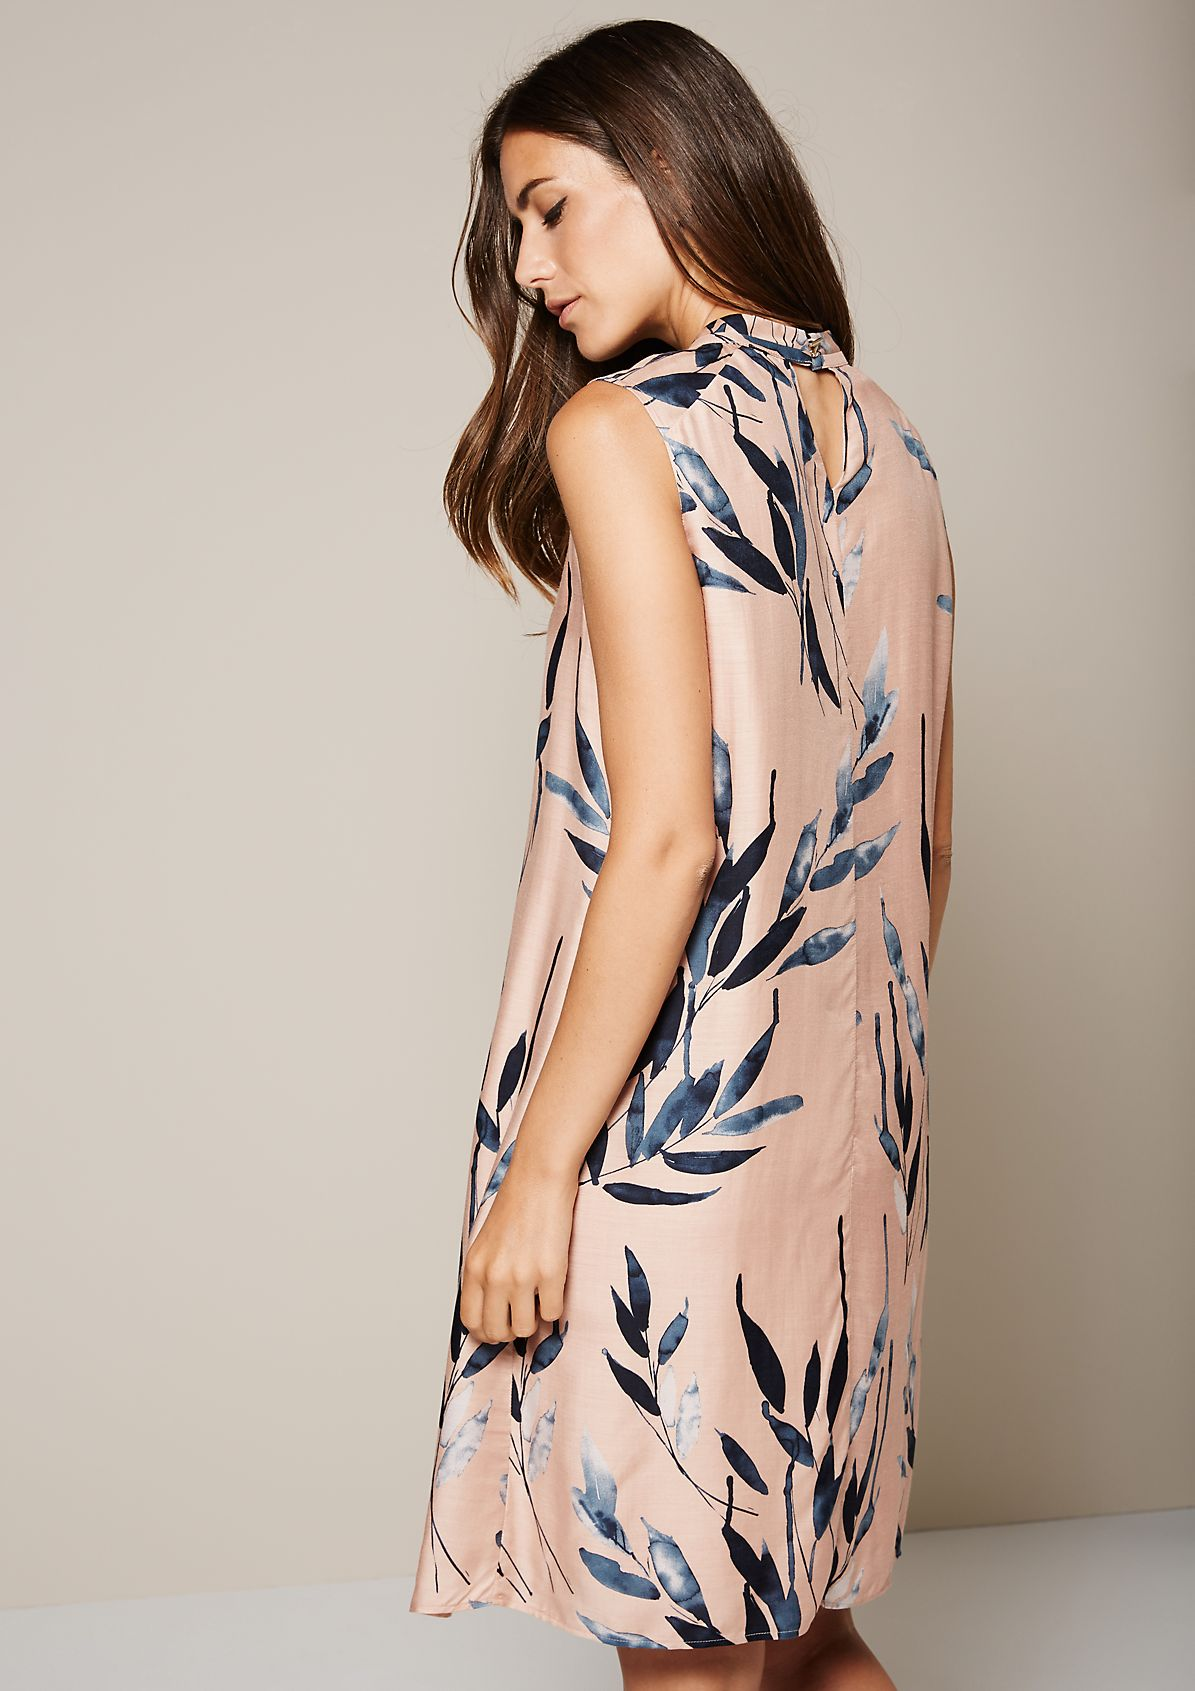 Sensational viscose dress with a decorative pattern from s.Oliver